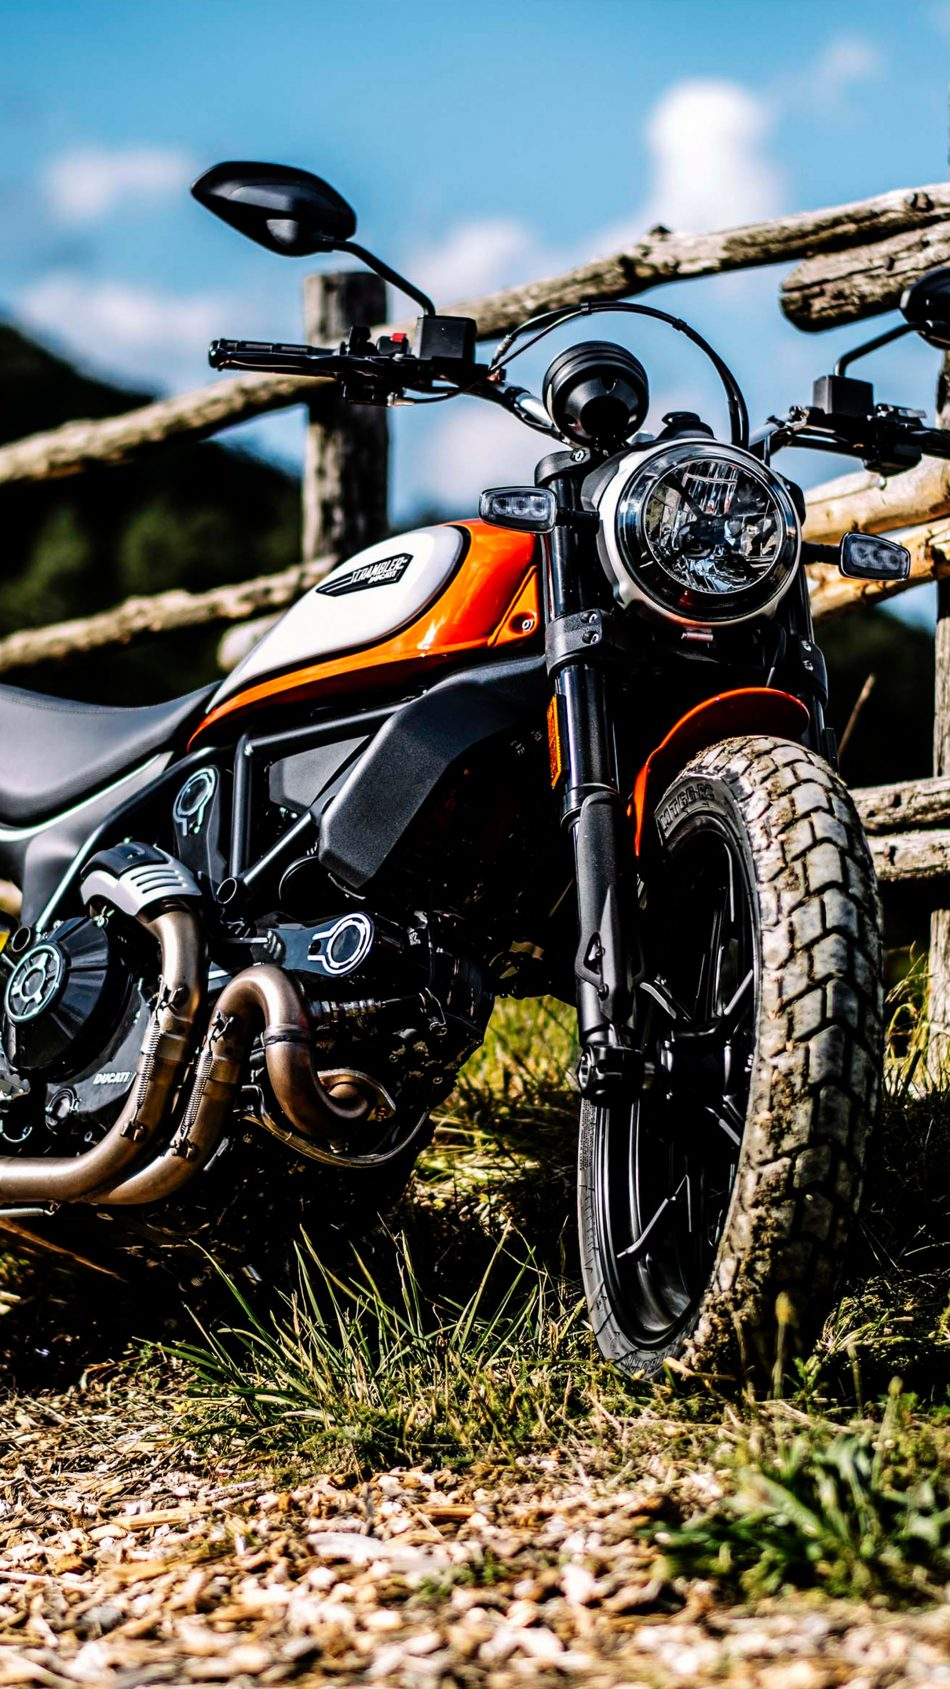 Ducati Scrambler Icon 4K Ultra HD Mobile Wallpaper